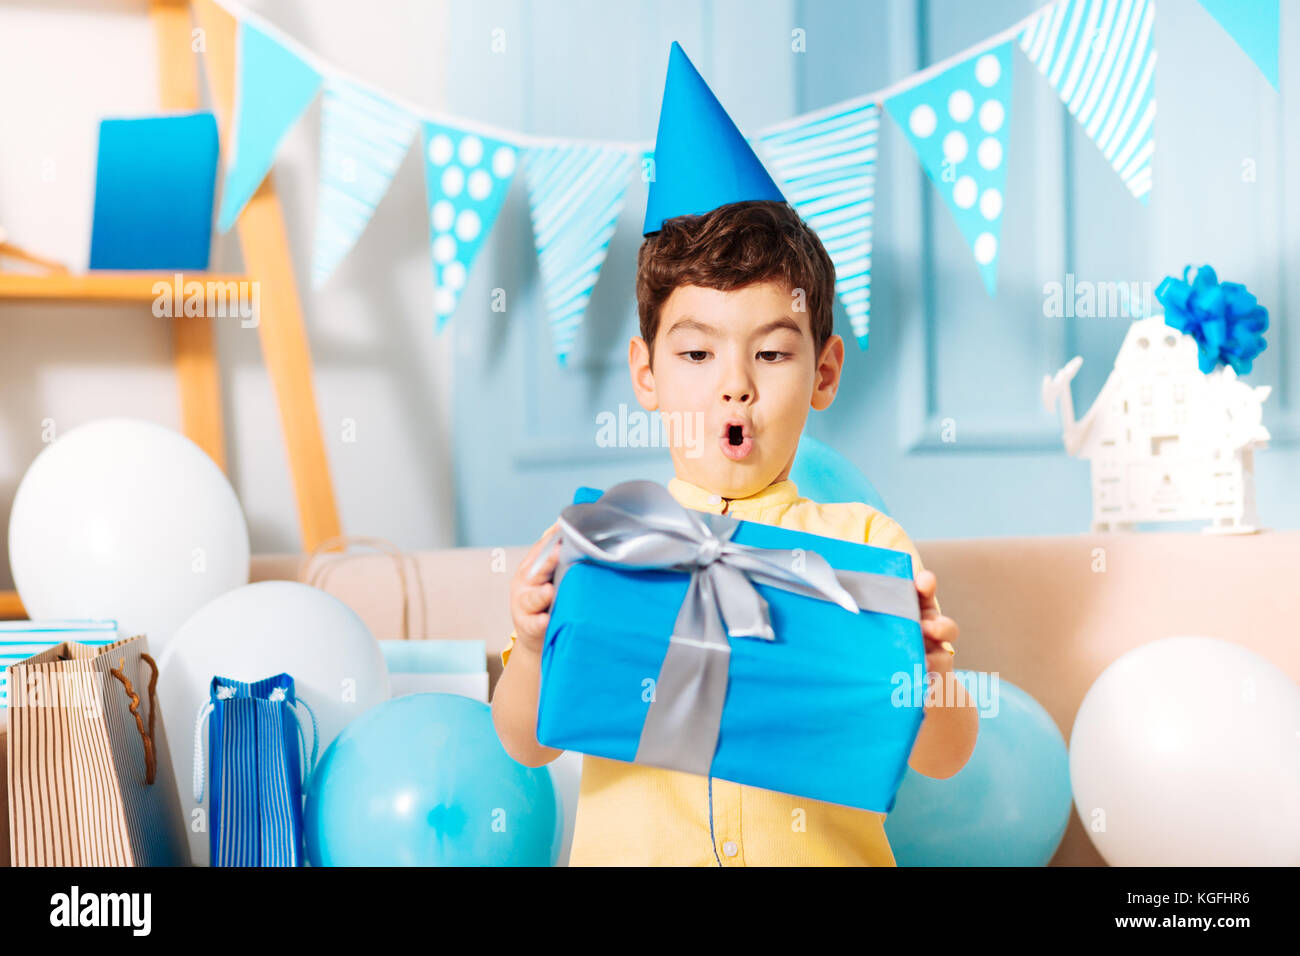 Little Boy Looking At His Birthday Gift With Surprise